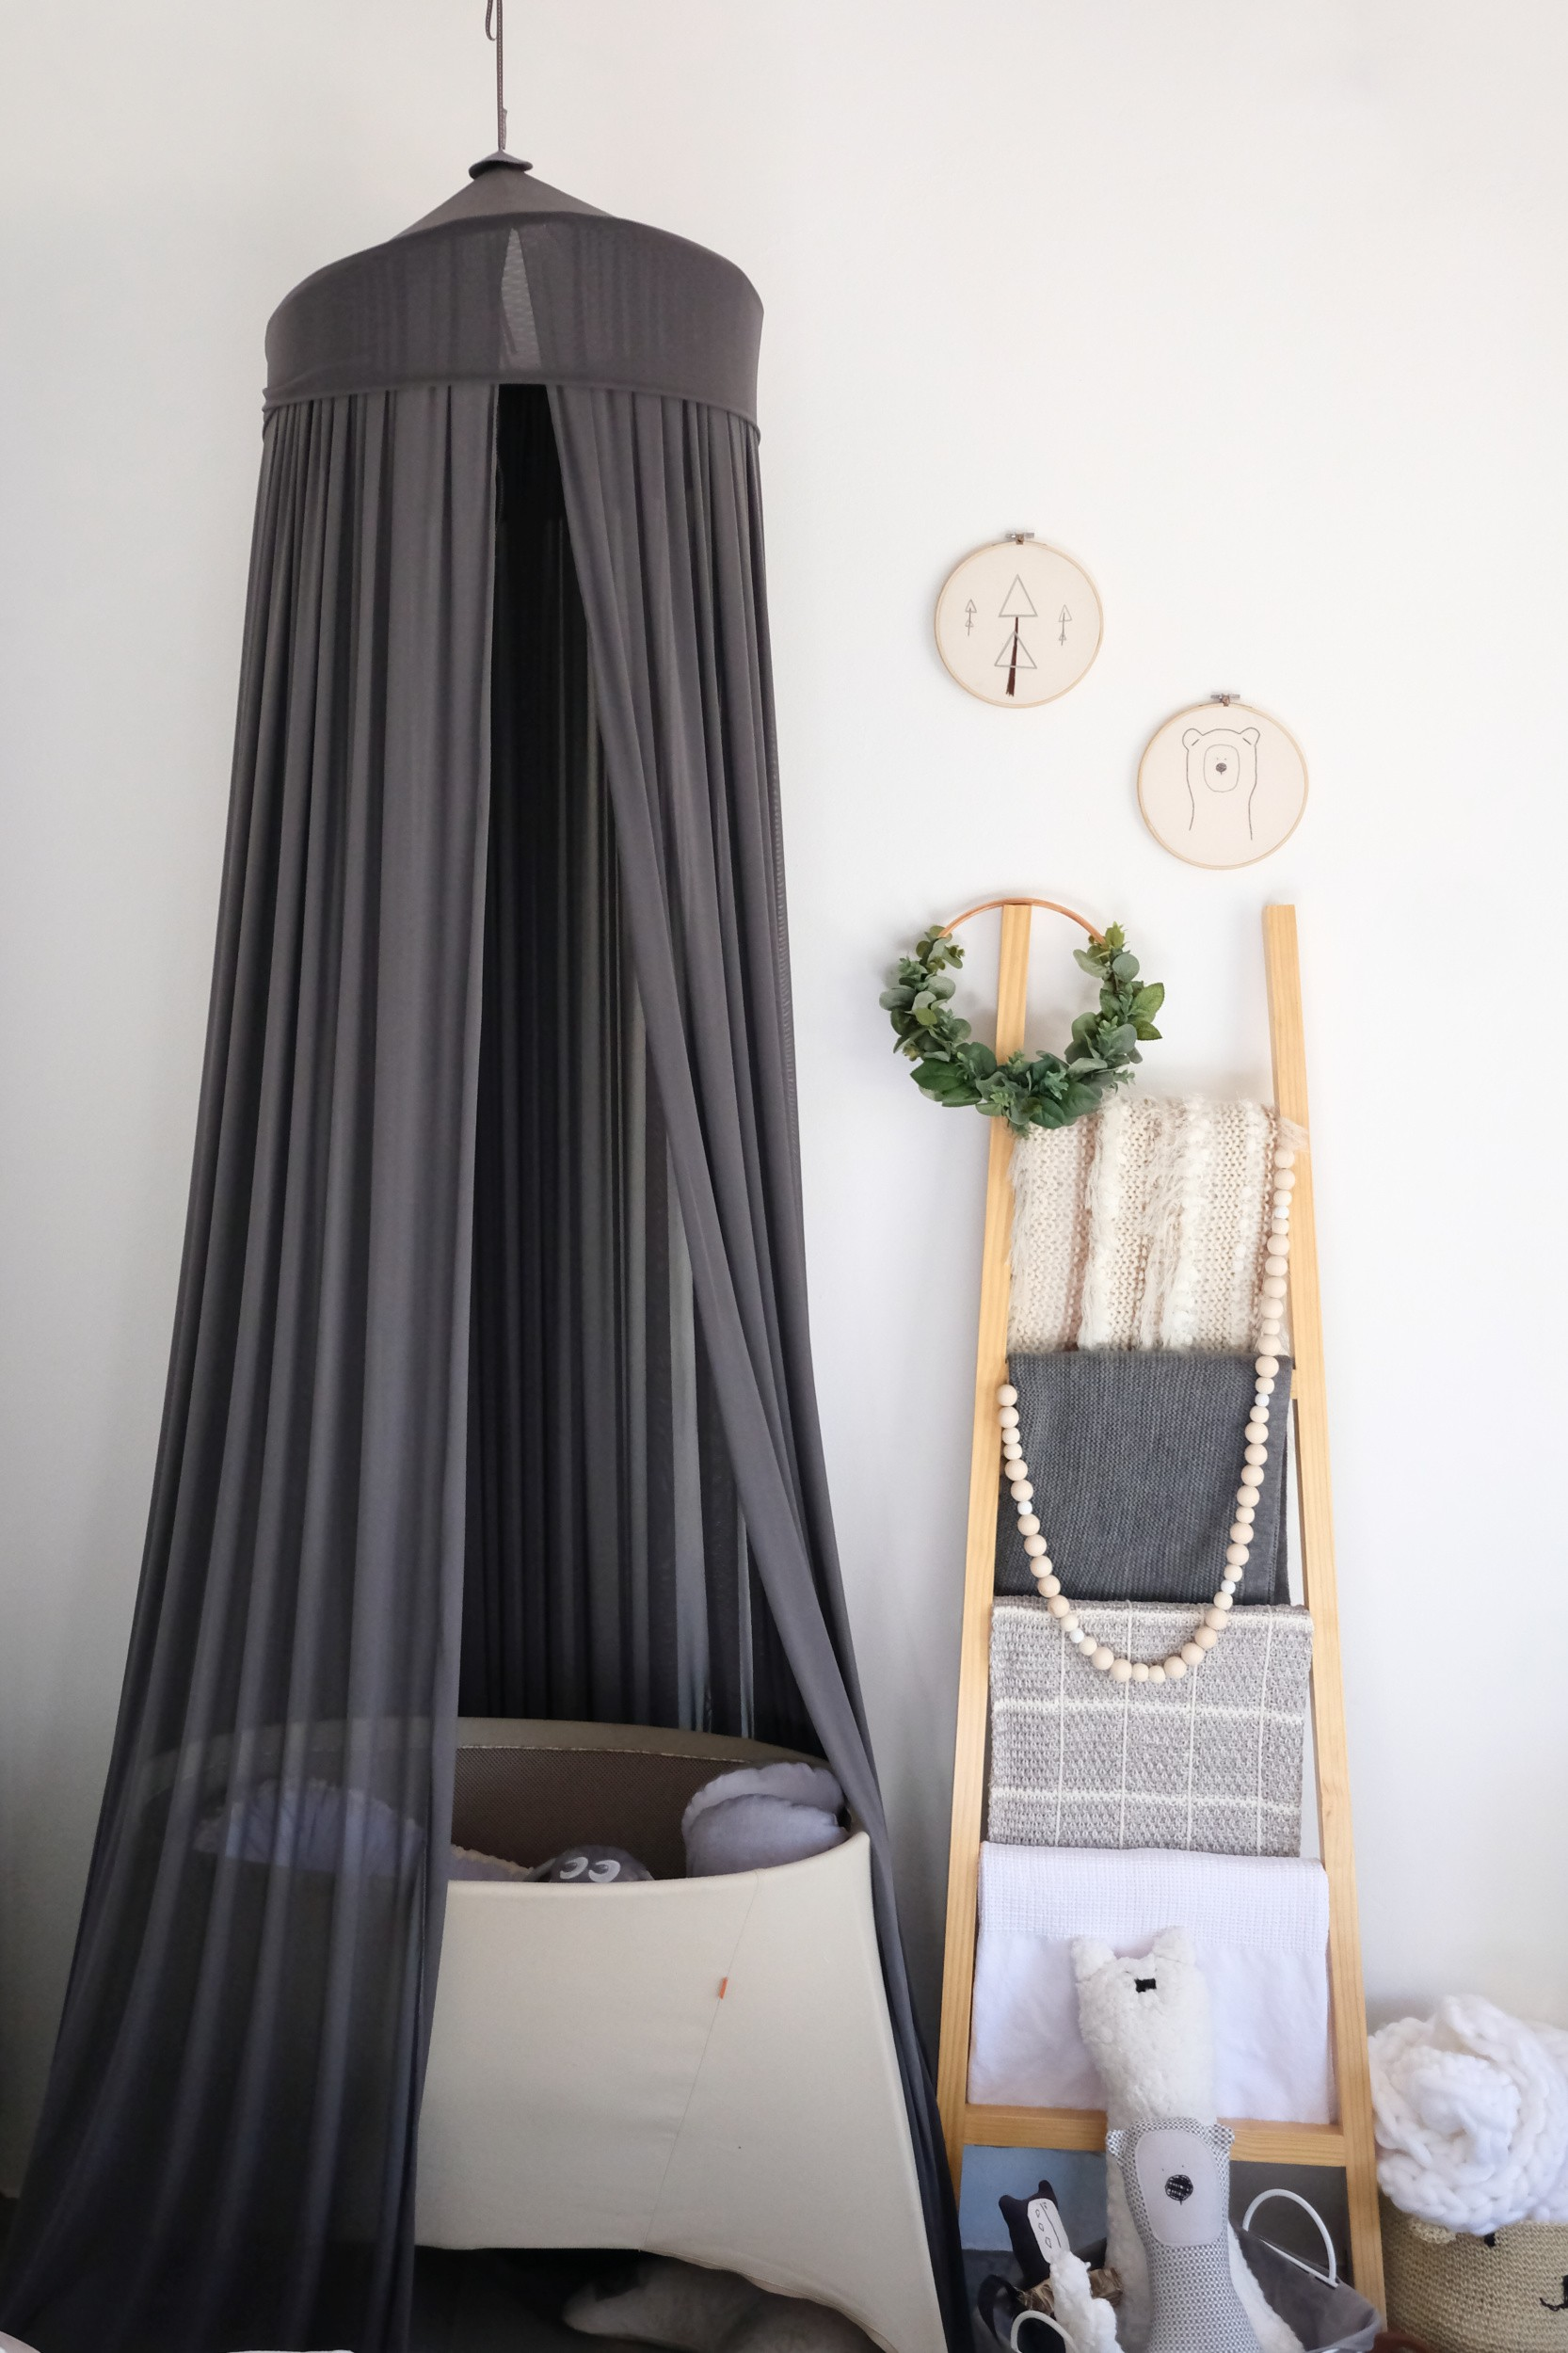 hygge master bedroom, A Room To Share: Hygge Master Bedroom and Baby Nook.